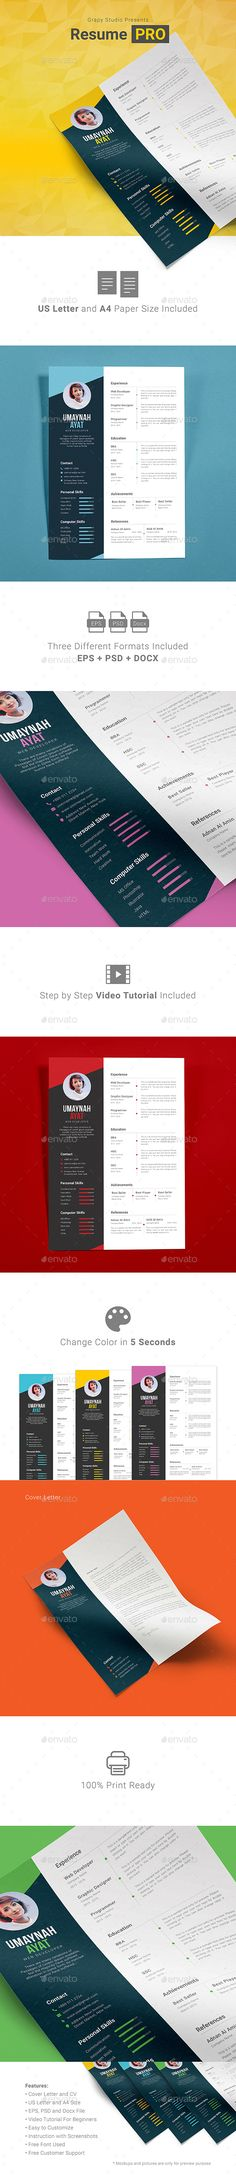 Resume Resume cv, Font logo and Logos - resume pro